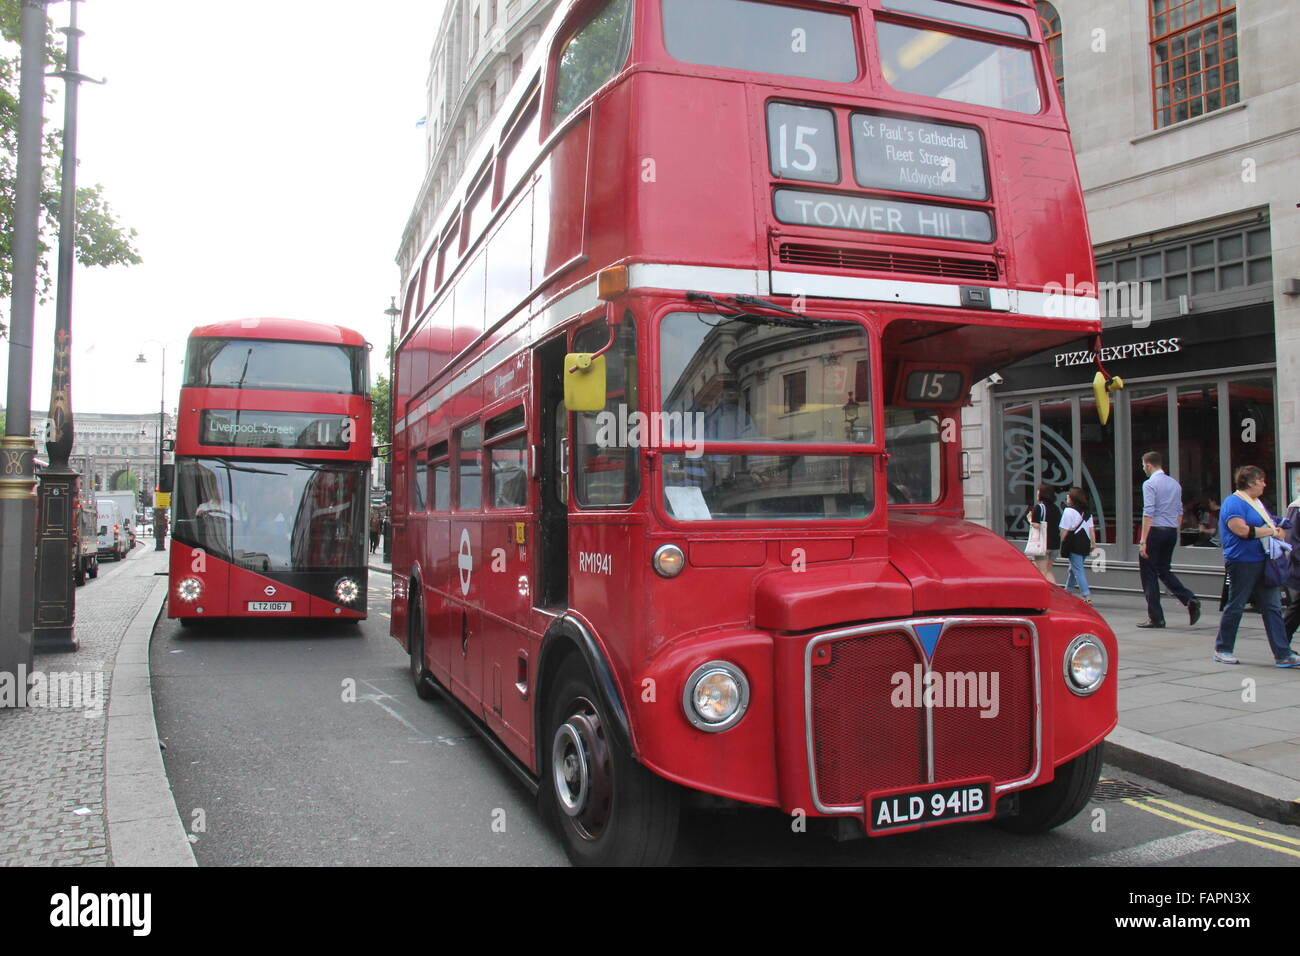 Old and new London Routemaster buses together - Stock Image